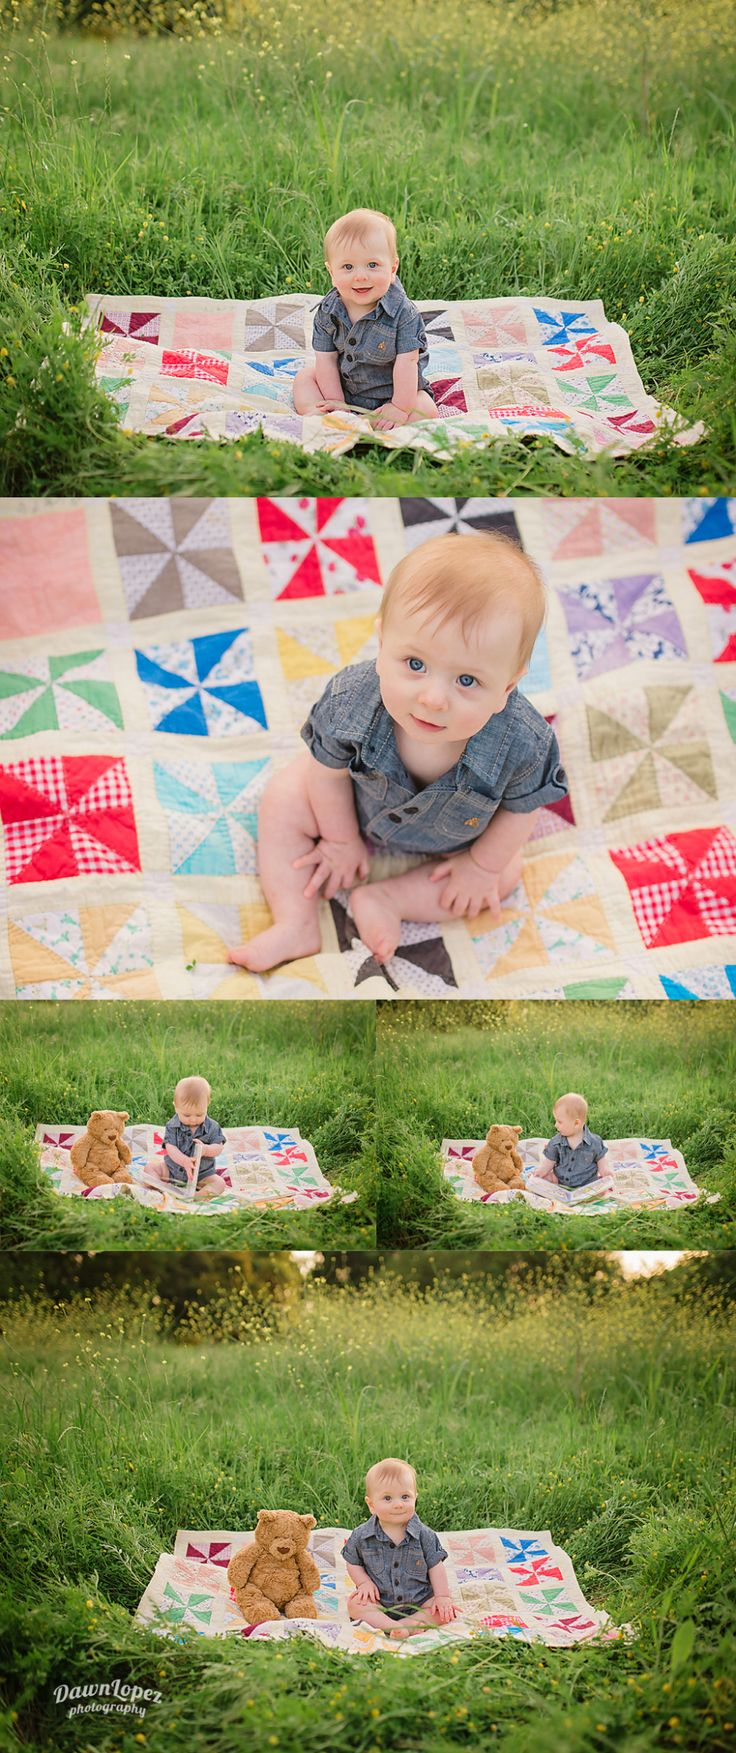 Outdoor 6 month old baby photo session, quilt, reading a book to baby bear. Keller, Texas photographer #dawnlopezphotography www.dawnlopezphotography.com